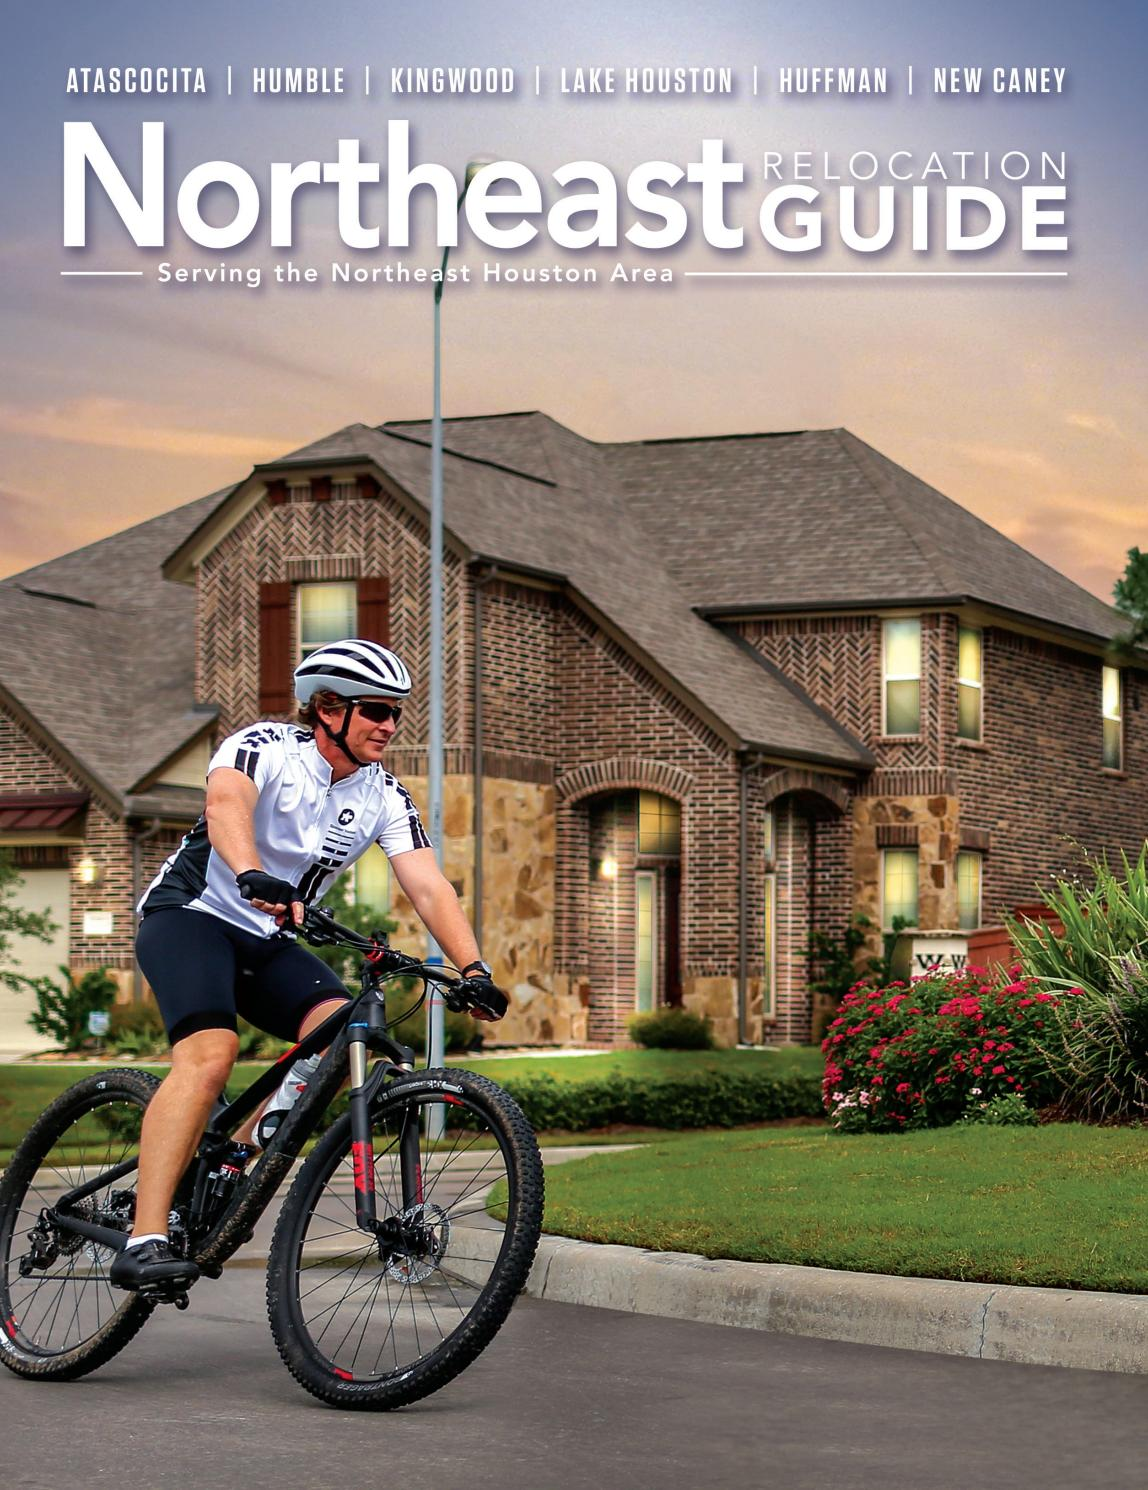 Northeast Houston Relocation Guide - Spring Summer 2018 by WEB Media Group  LLC - issuu 8c257fd36